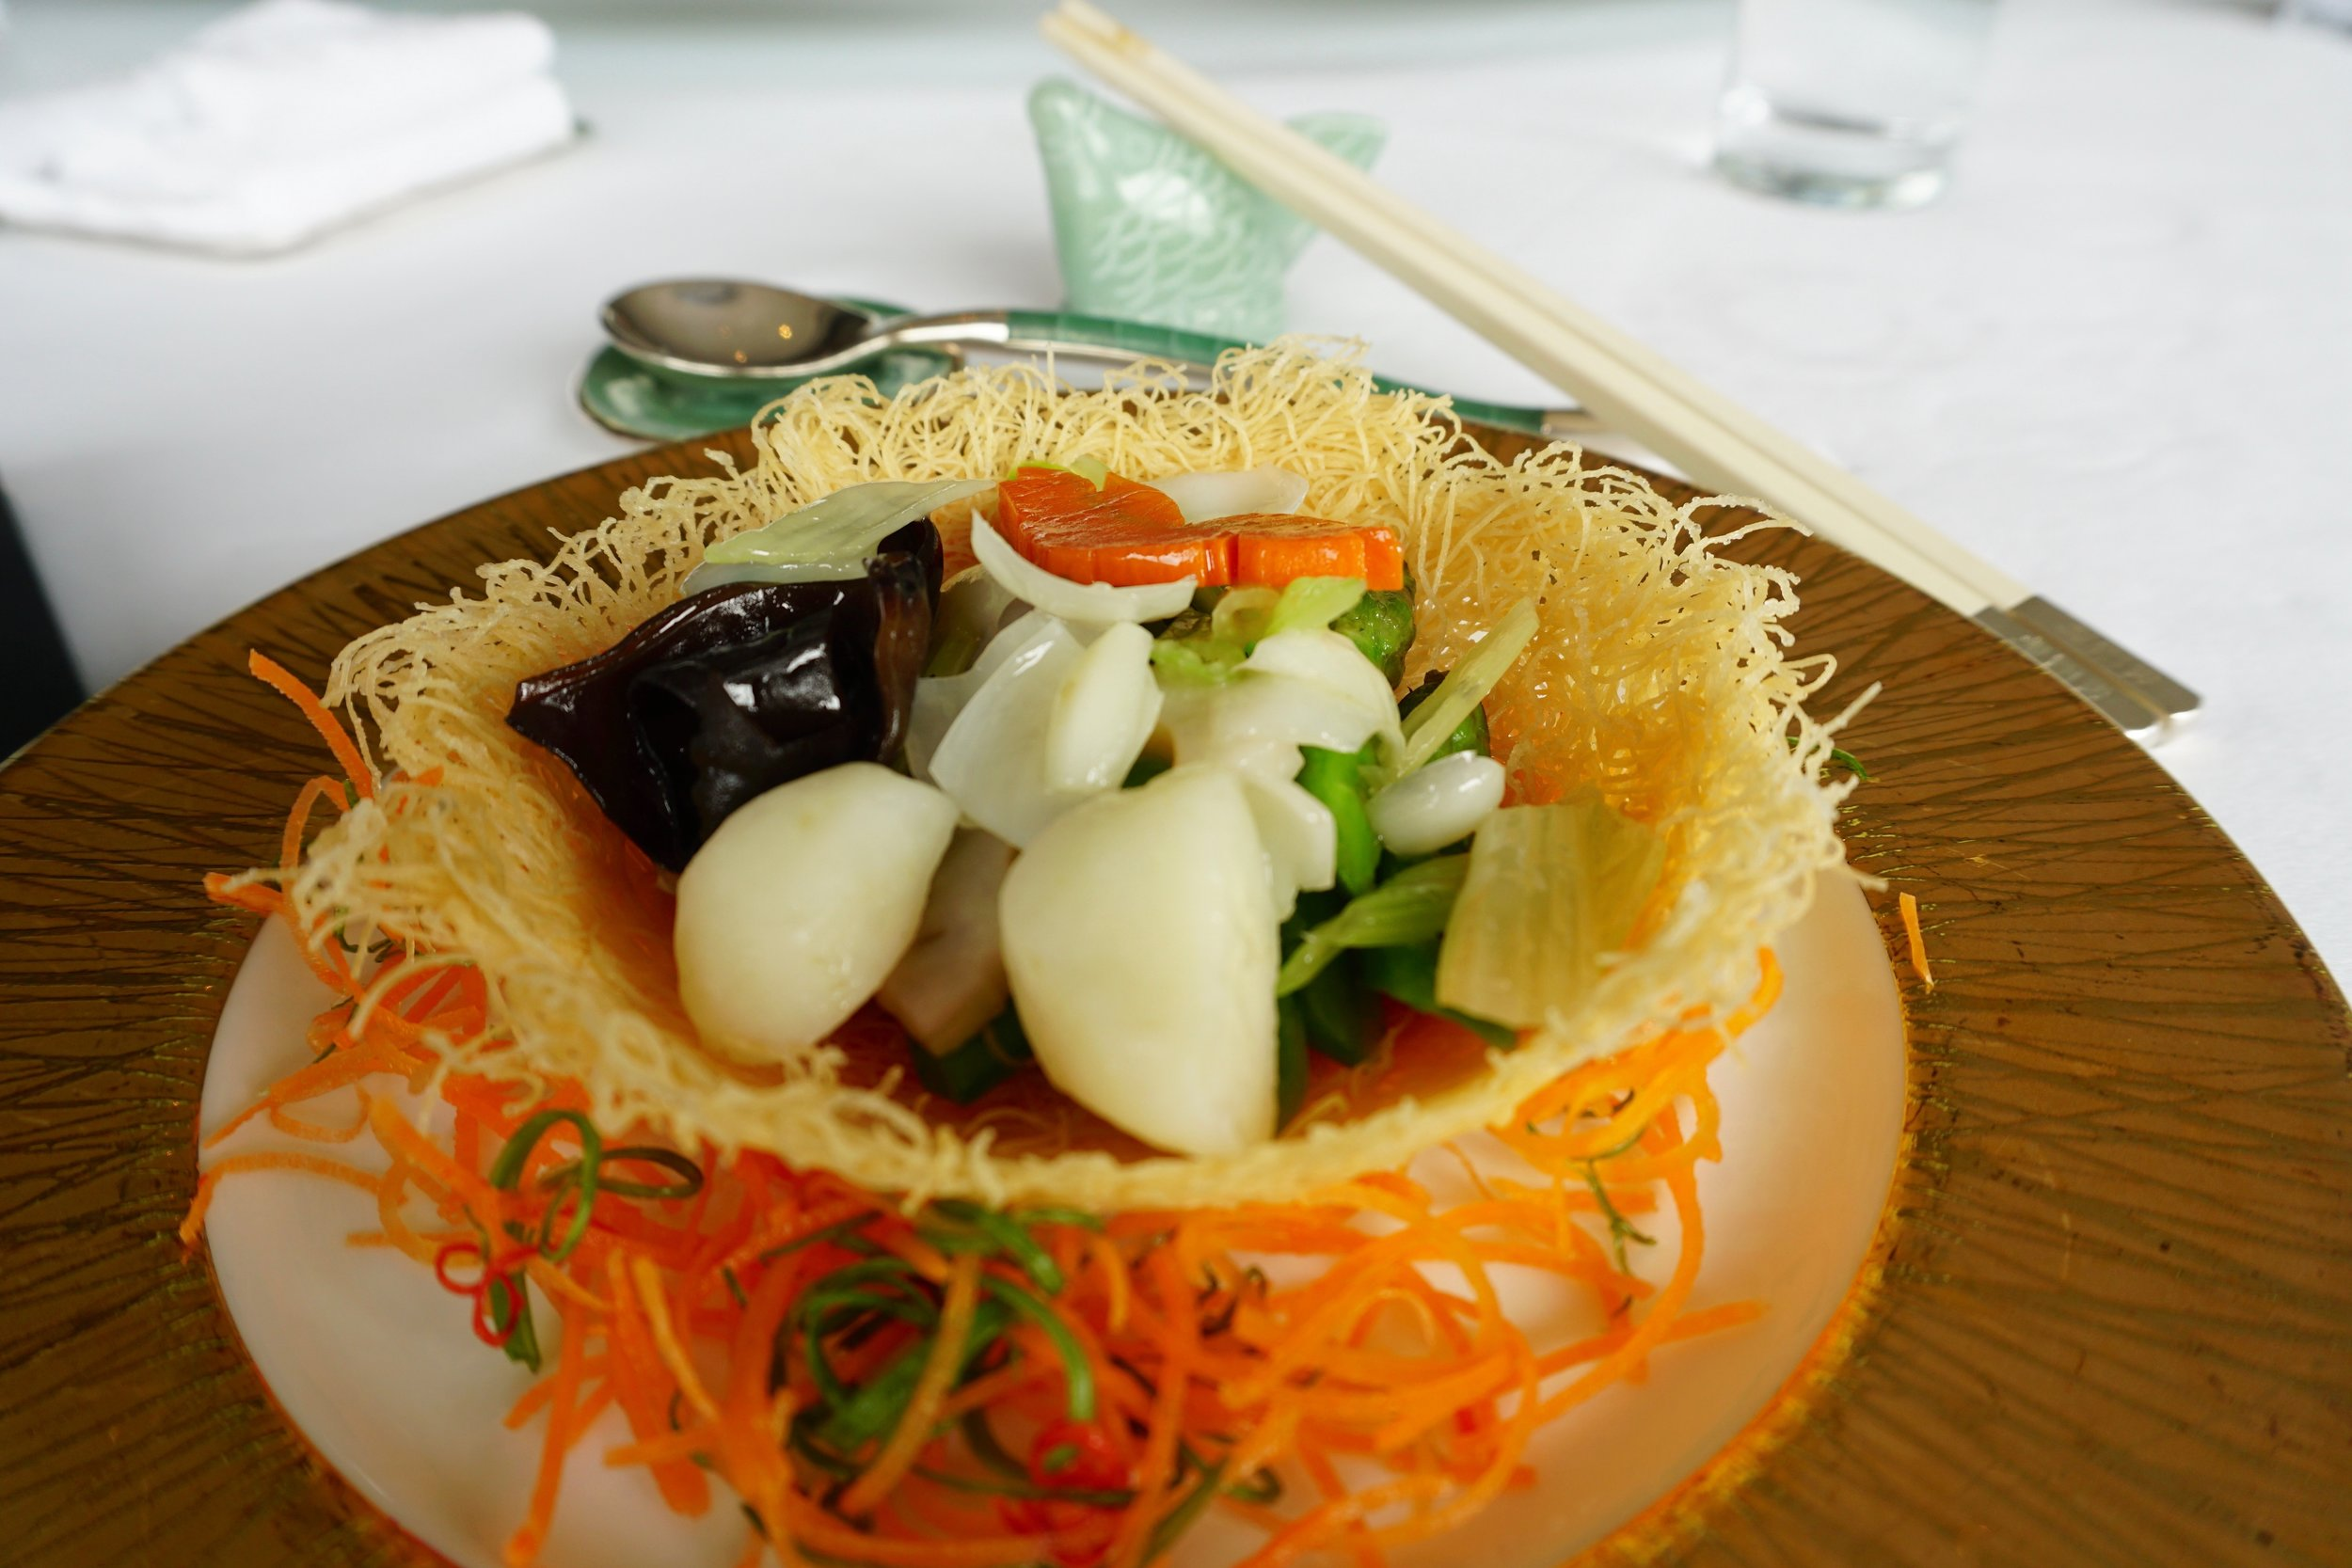 Wok-fried vegetables served in an edible wheat-flour basket.